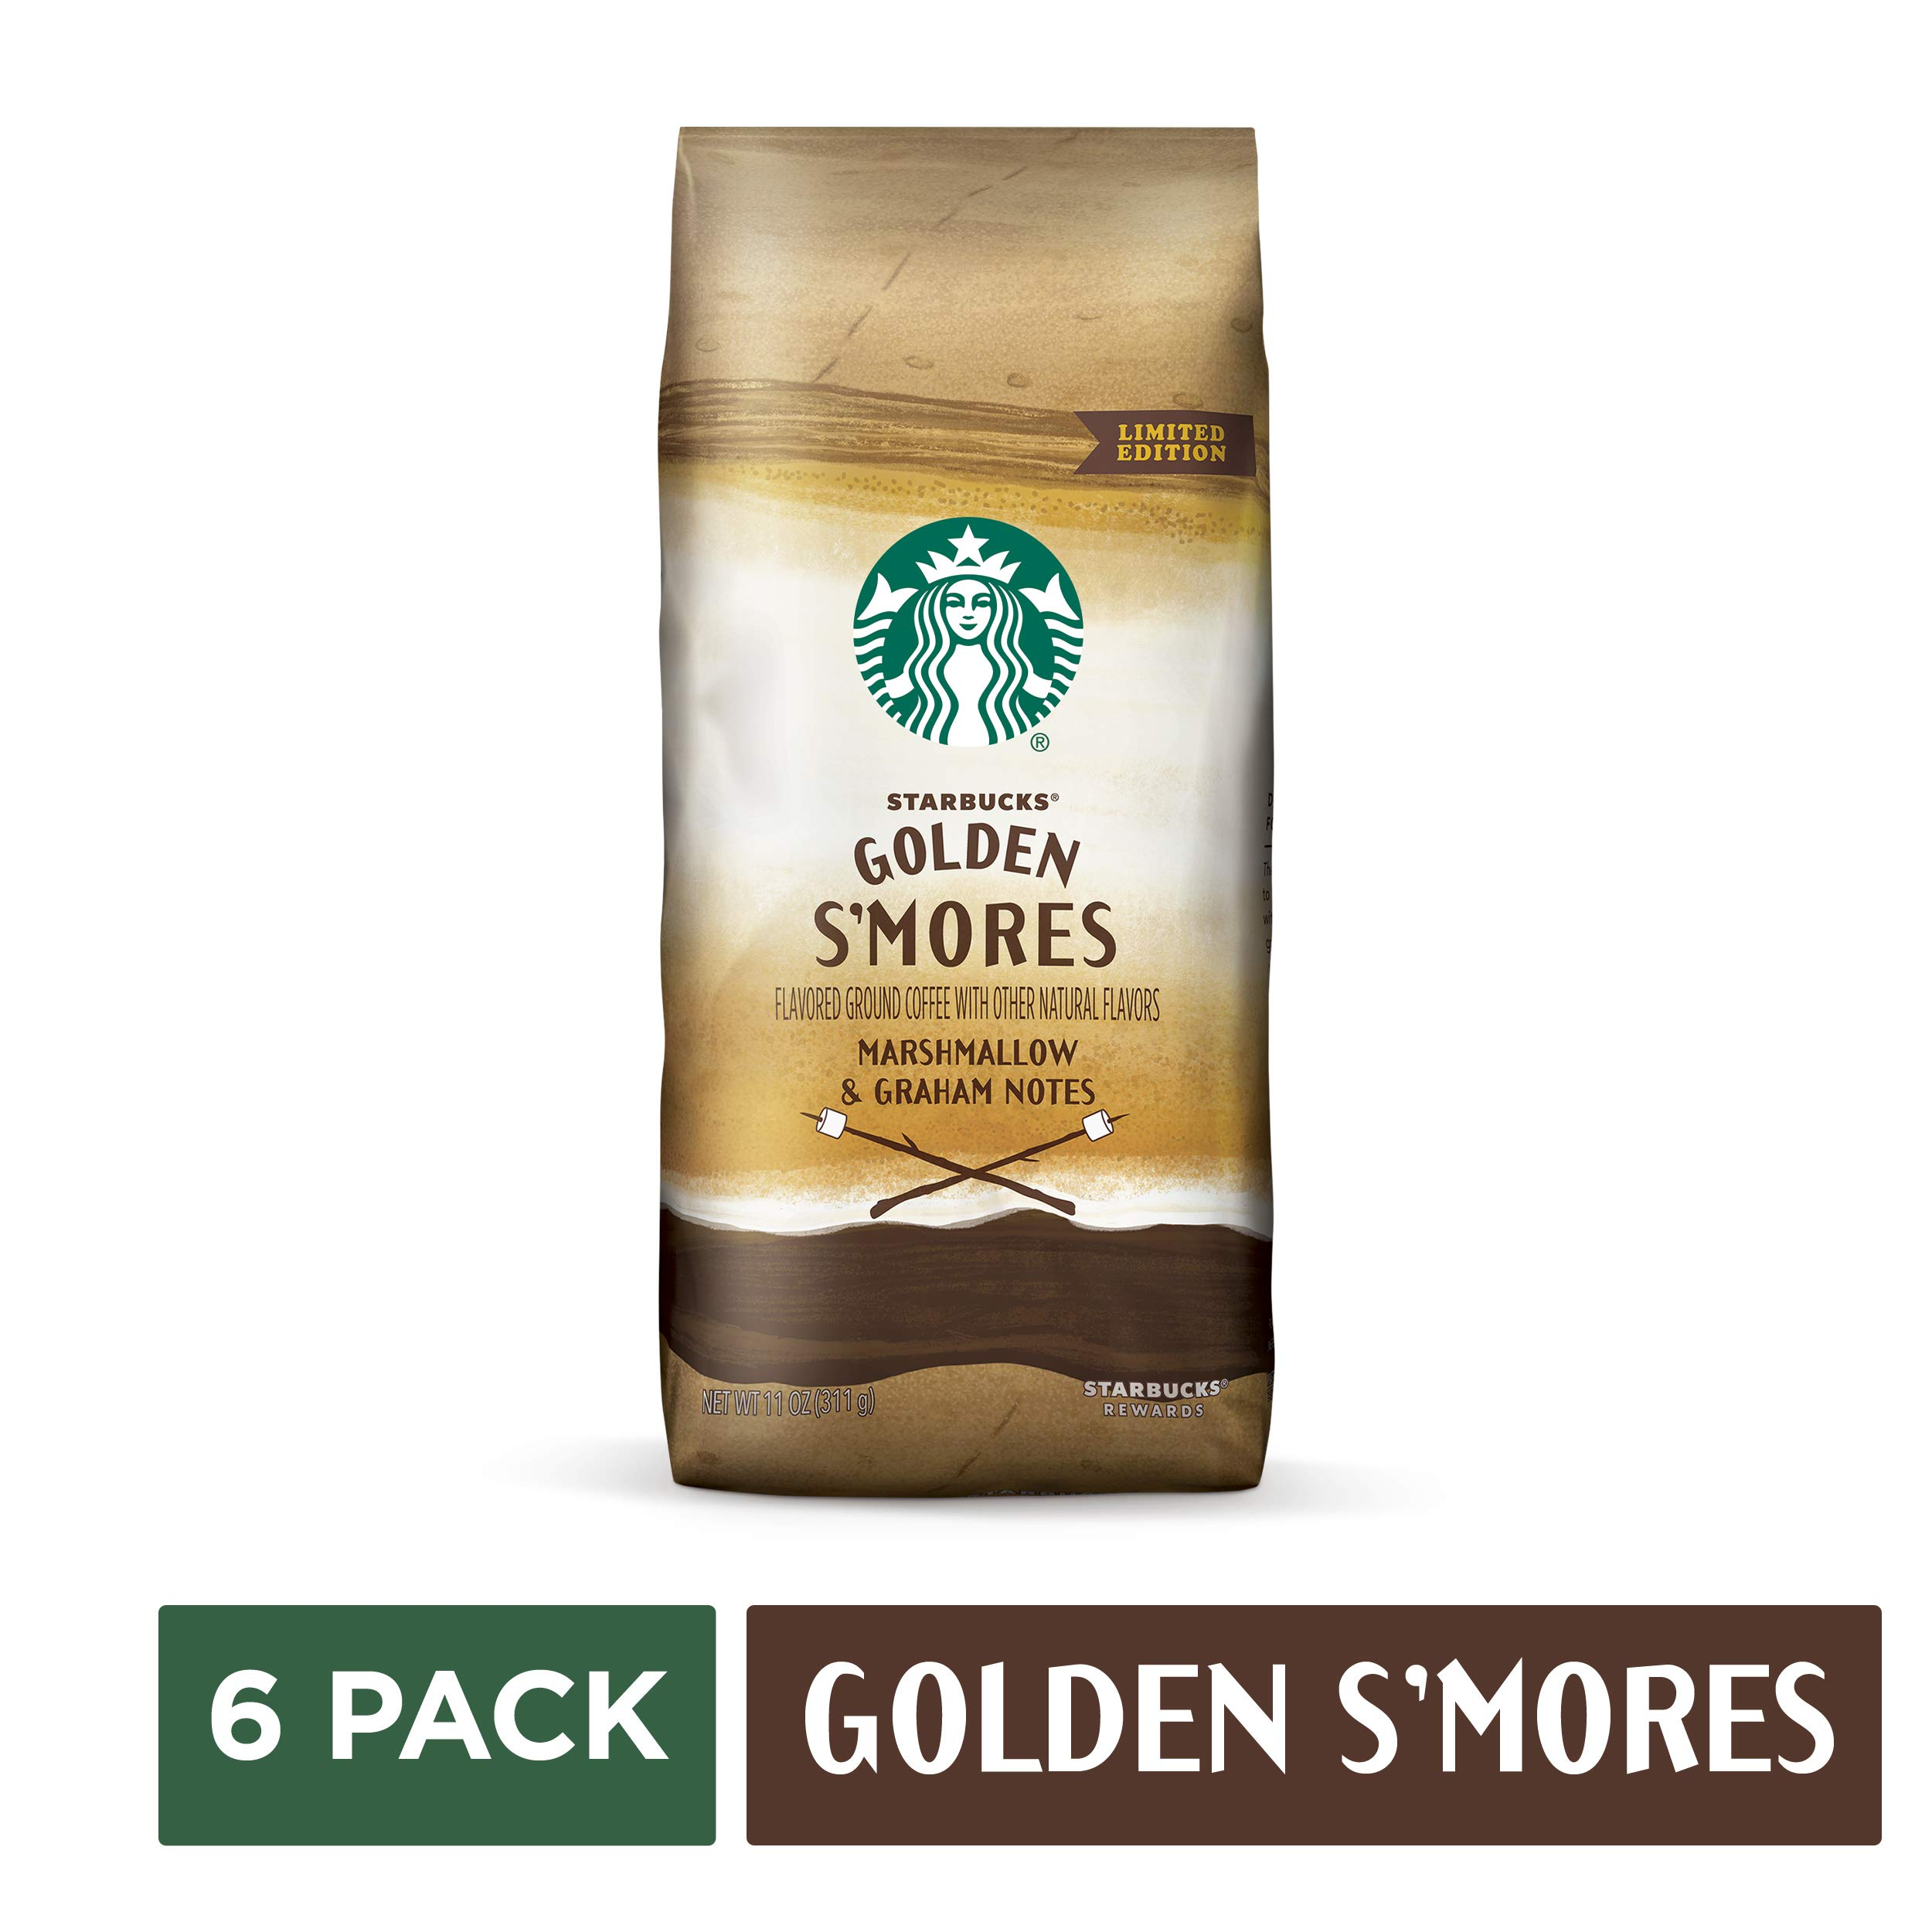 Starbucks Golden S'mores Flavored Blonde Roast Ground Coffee, six 11-oz. bags (total net weight 4.1 LB [1.8 kg]) by Starbucks